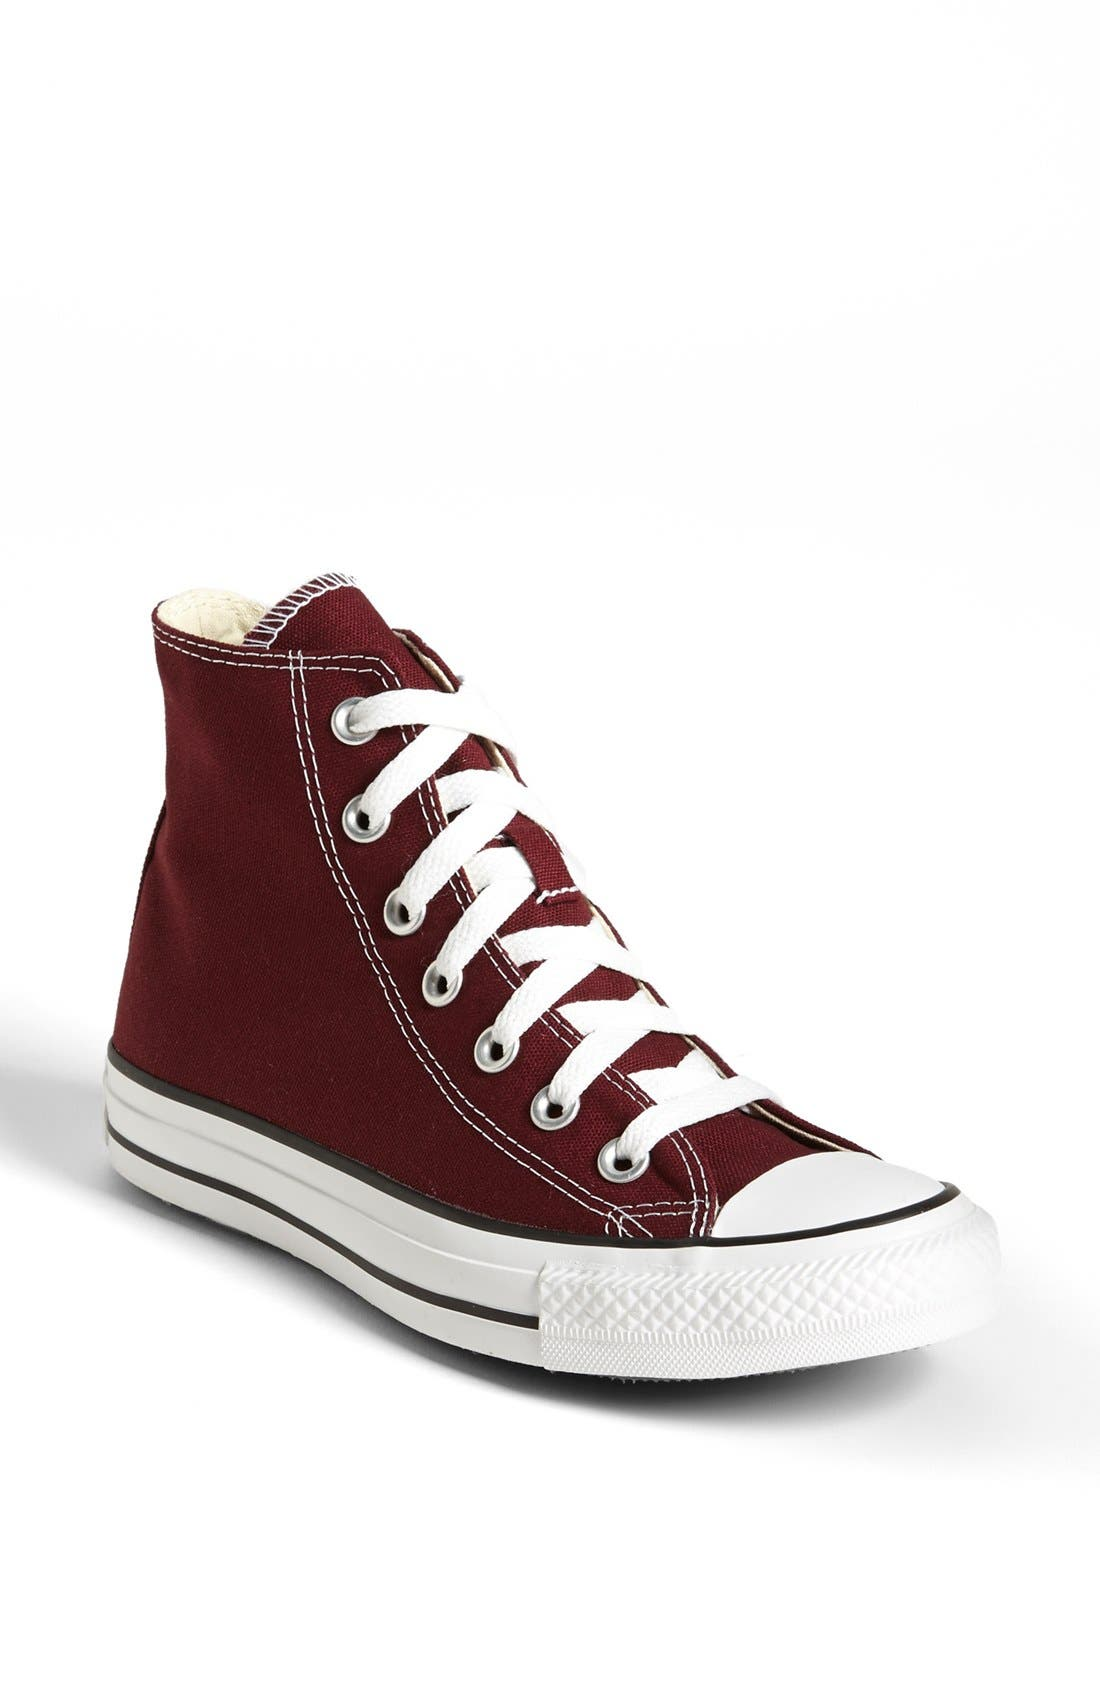 Main Image - Converse Chuck Taylor® All Star® High Top Sneaker (Women)